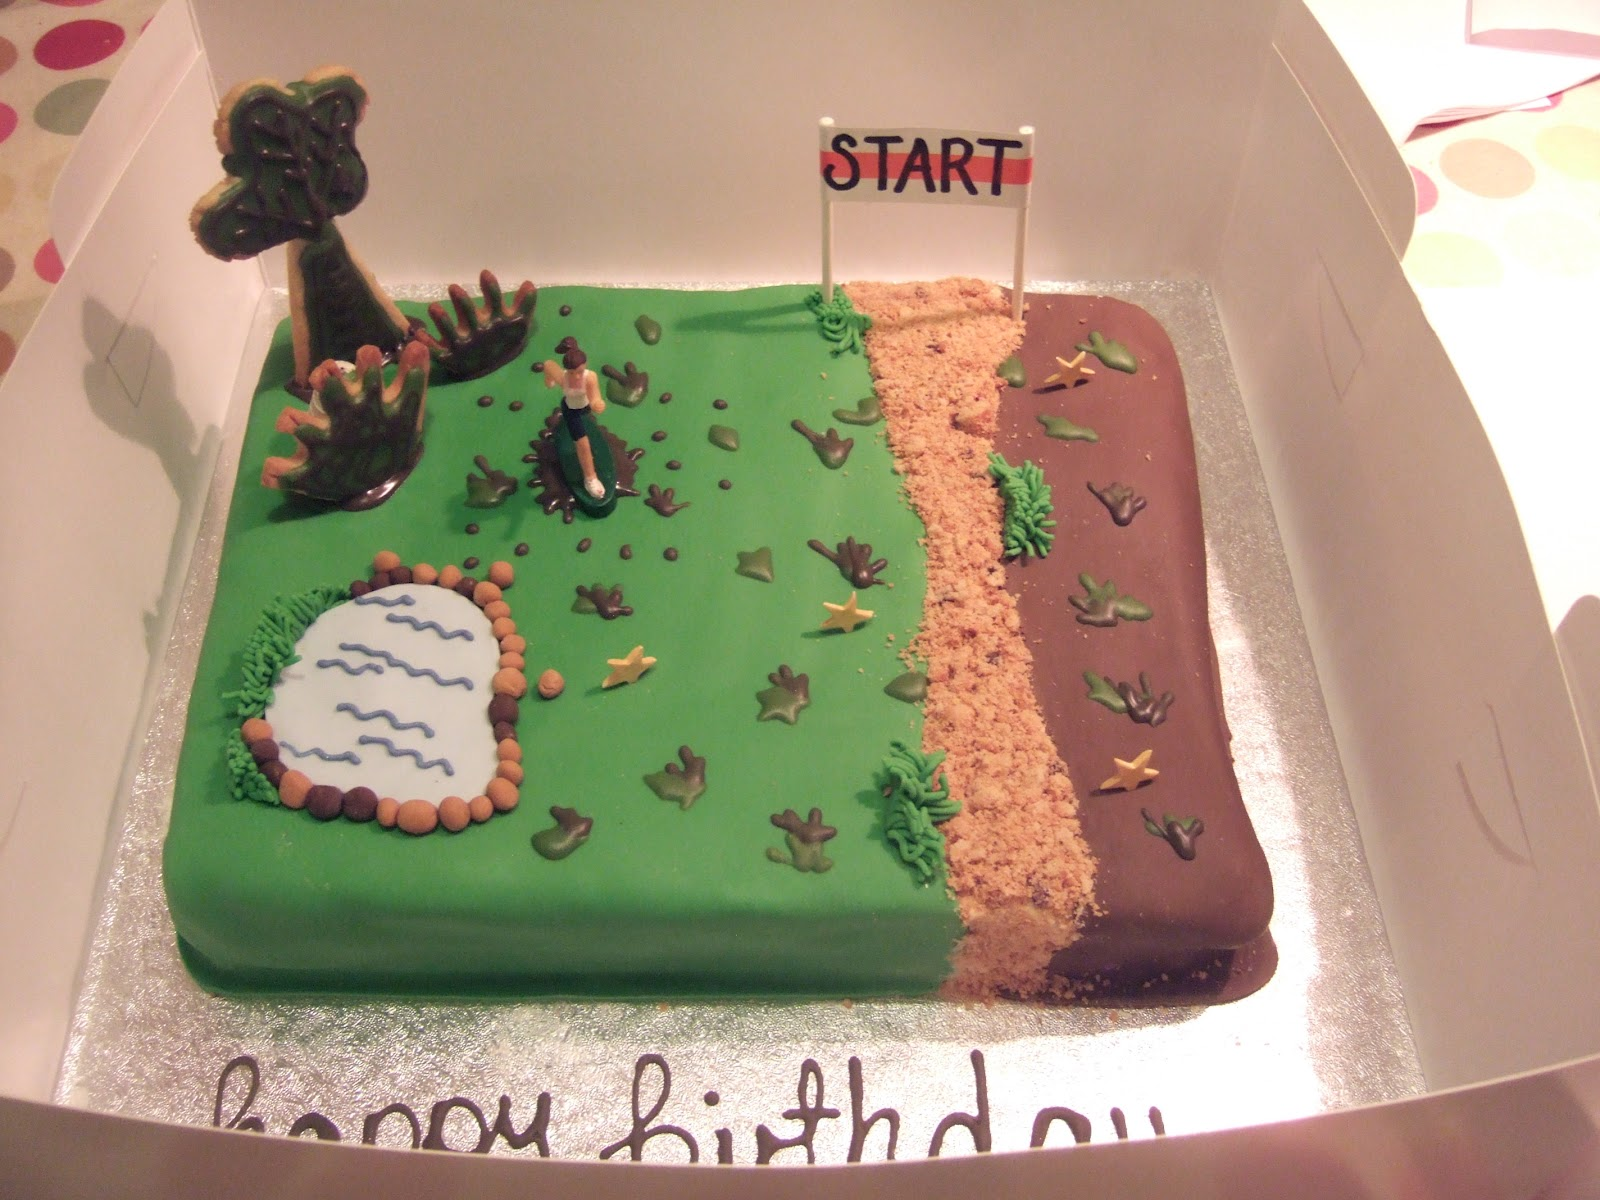 Cross Country Cake Decorating Ideas 6194 Cross Country Run